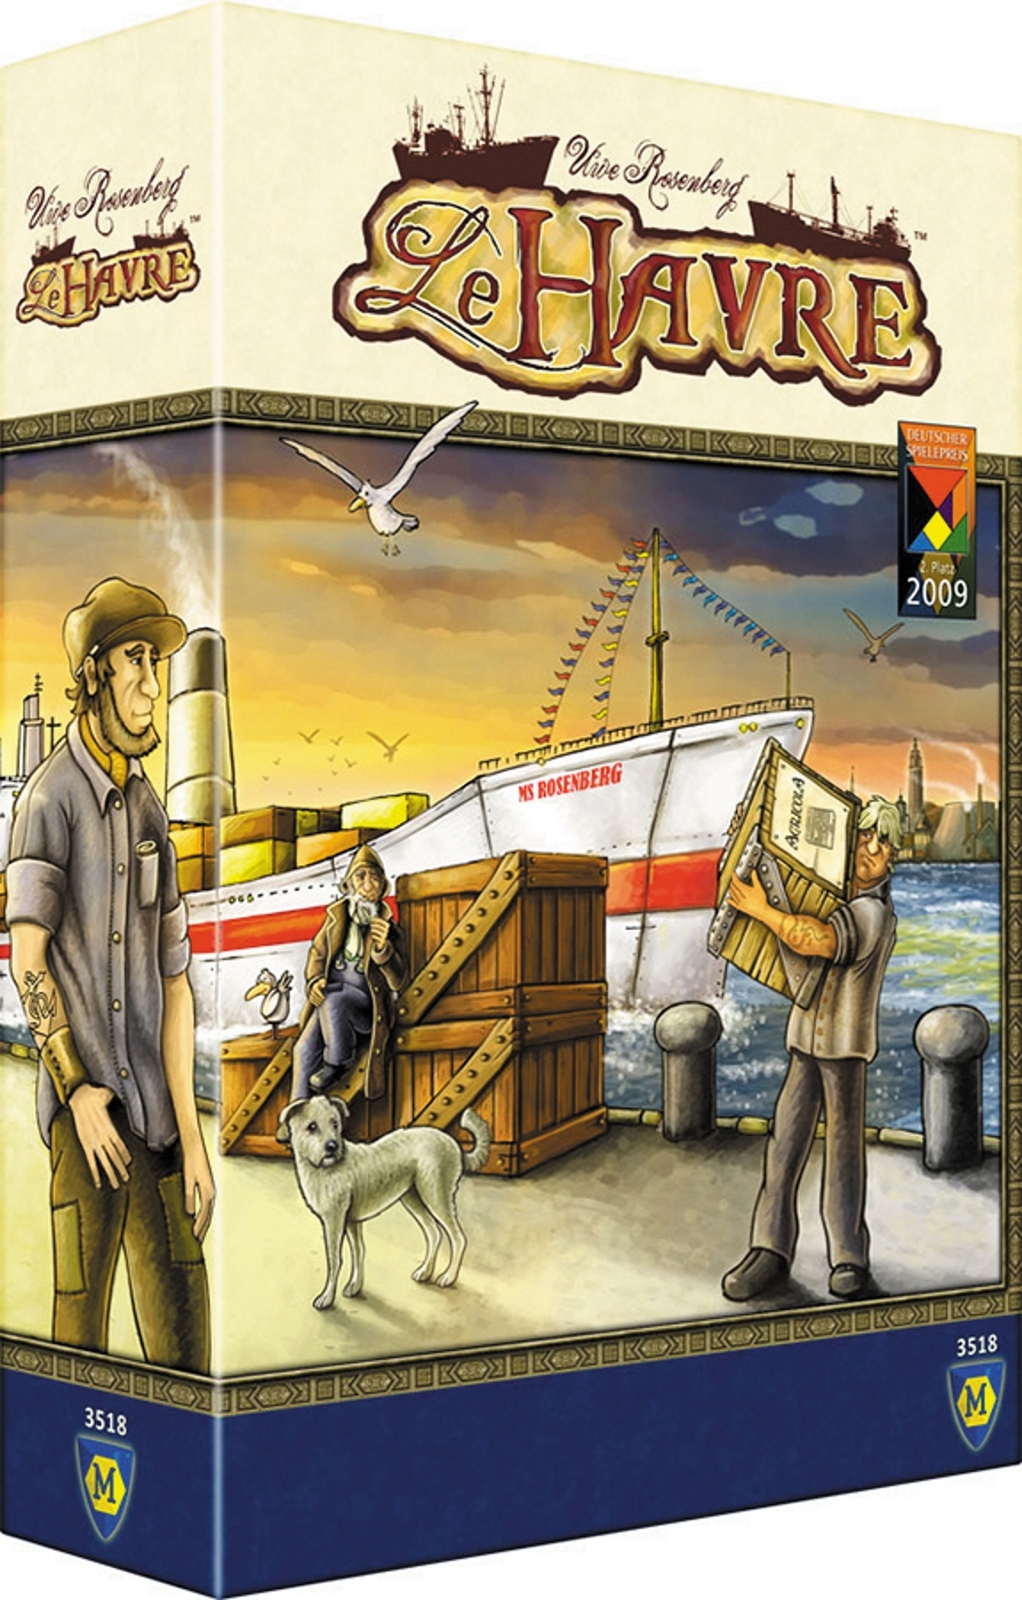 Le Havre - City building style strategy Boardgame (Mayfair Games)